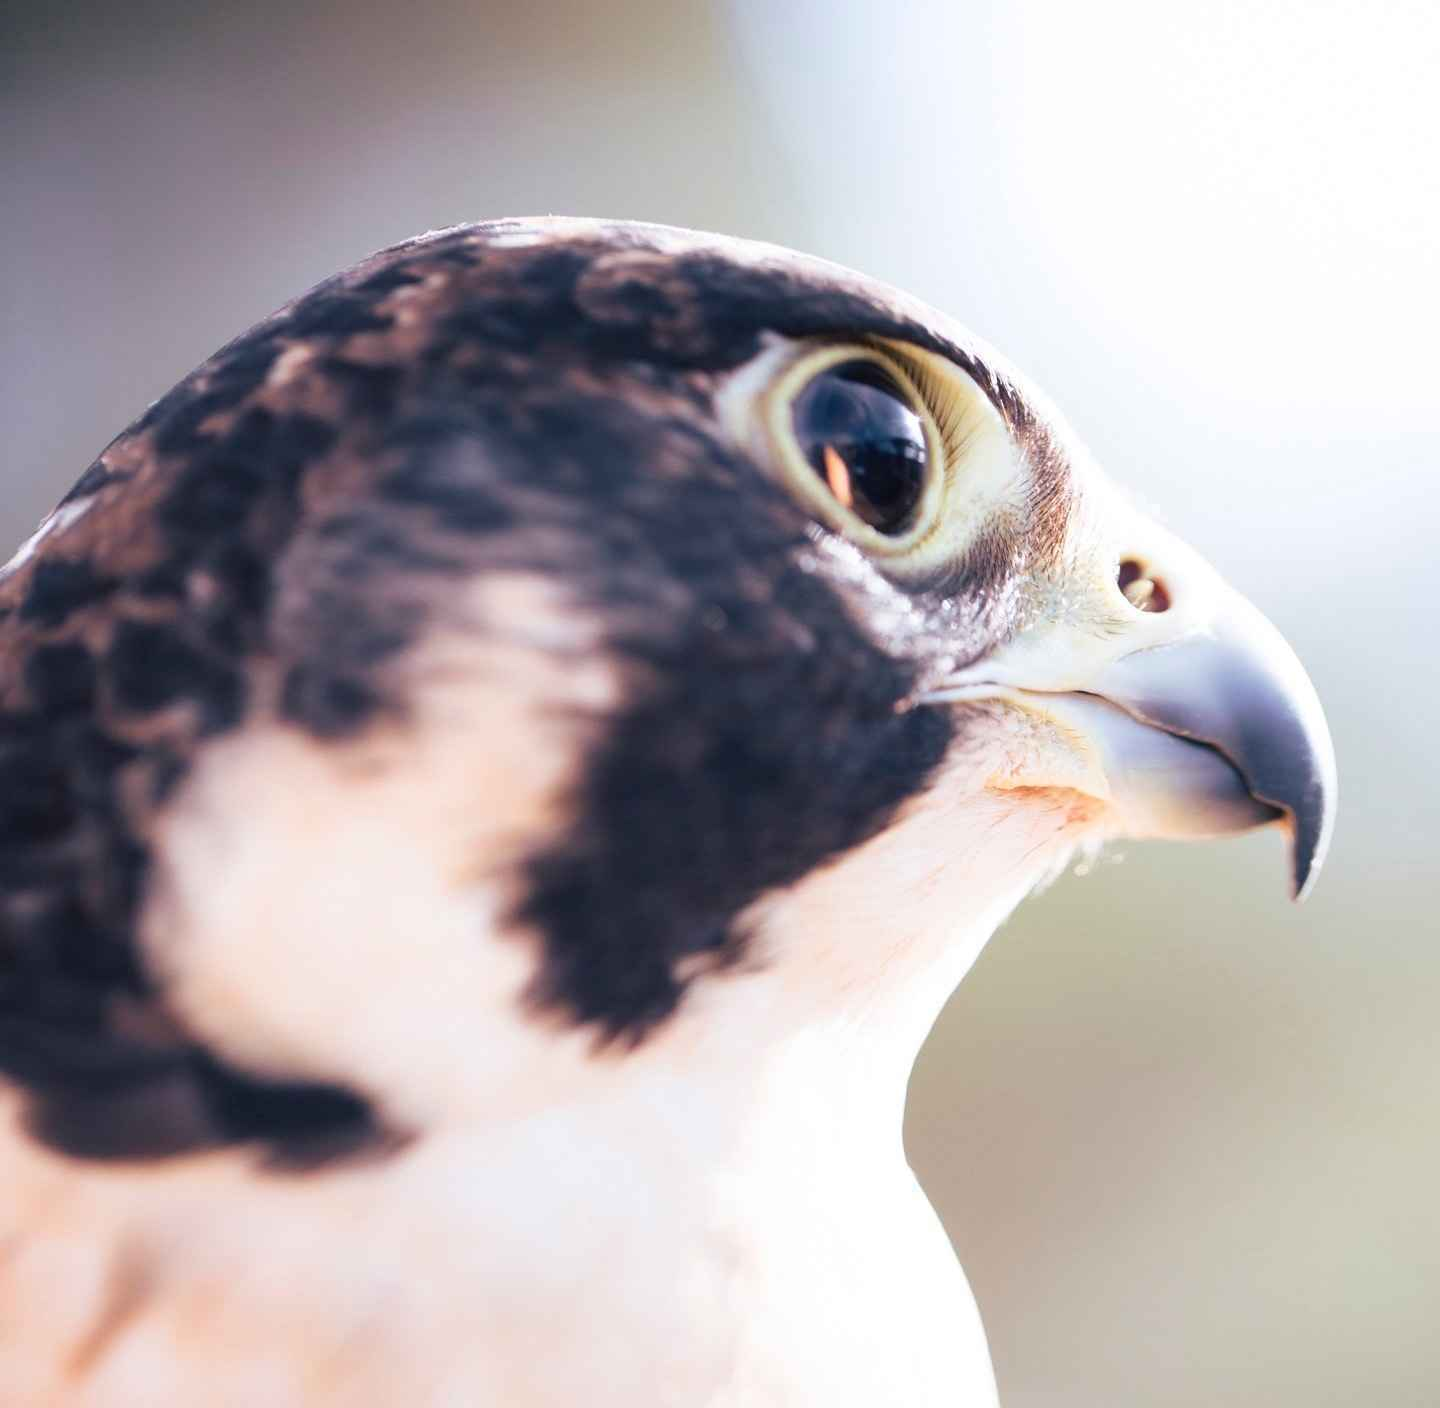 Donate today to help birds of prey image